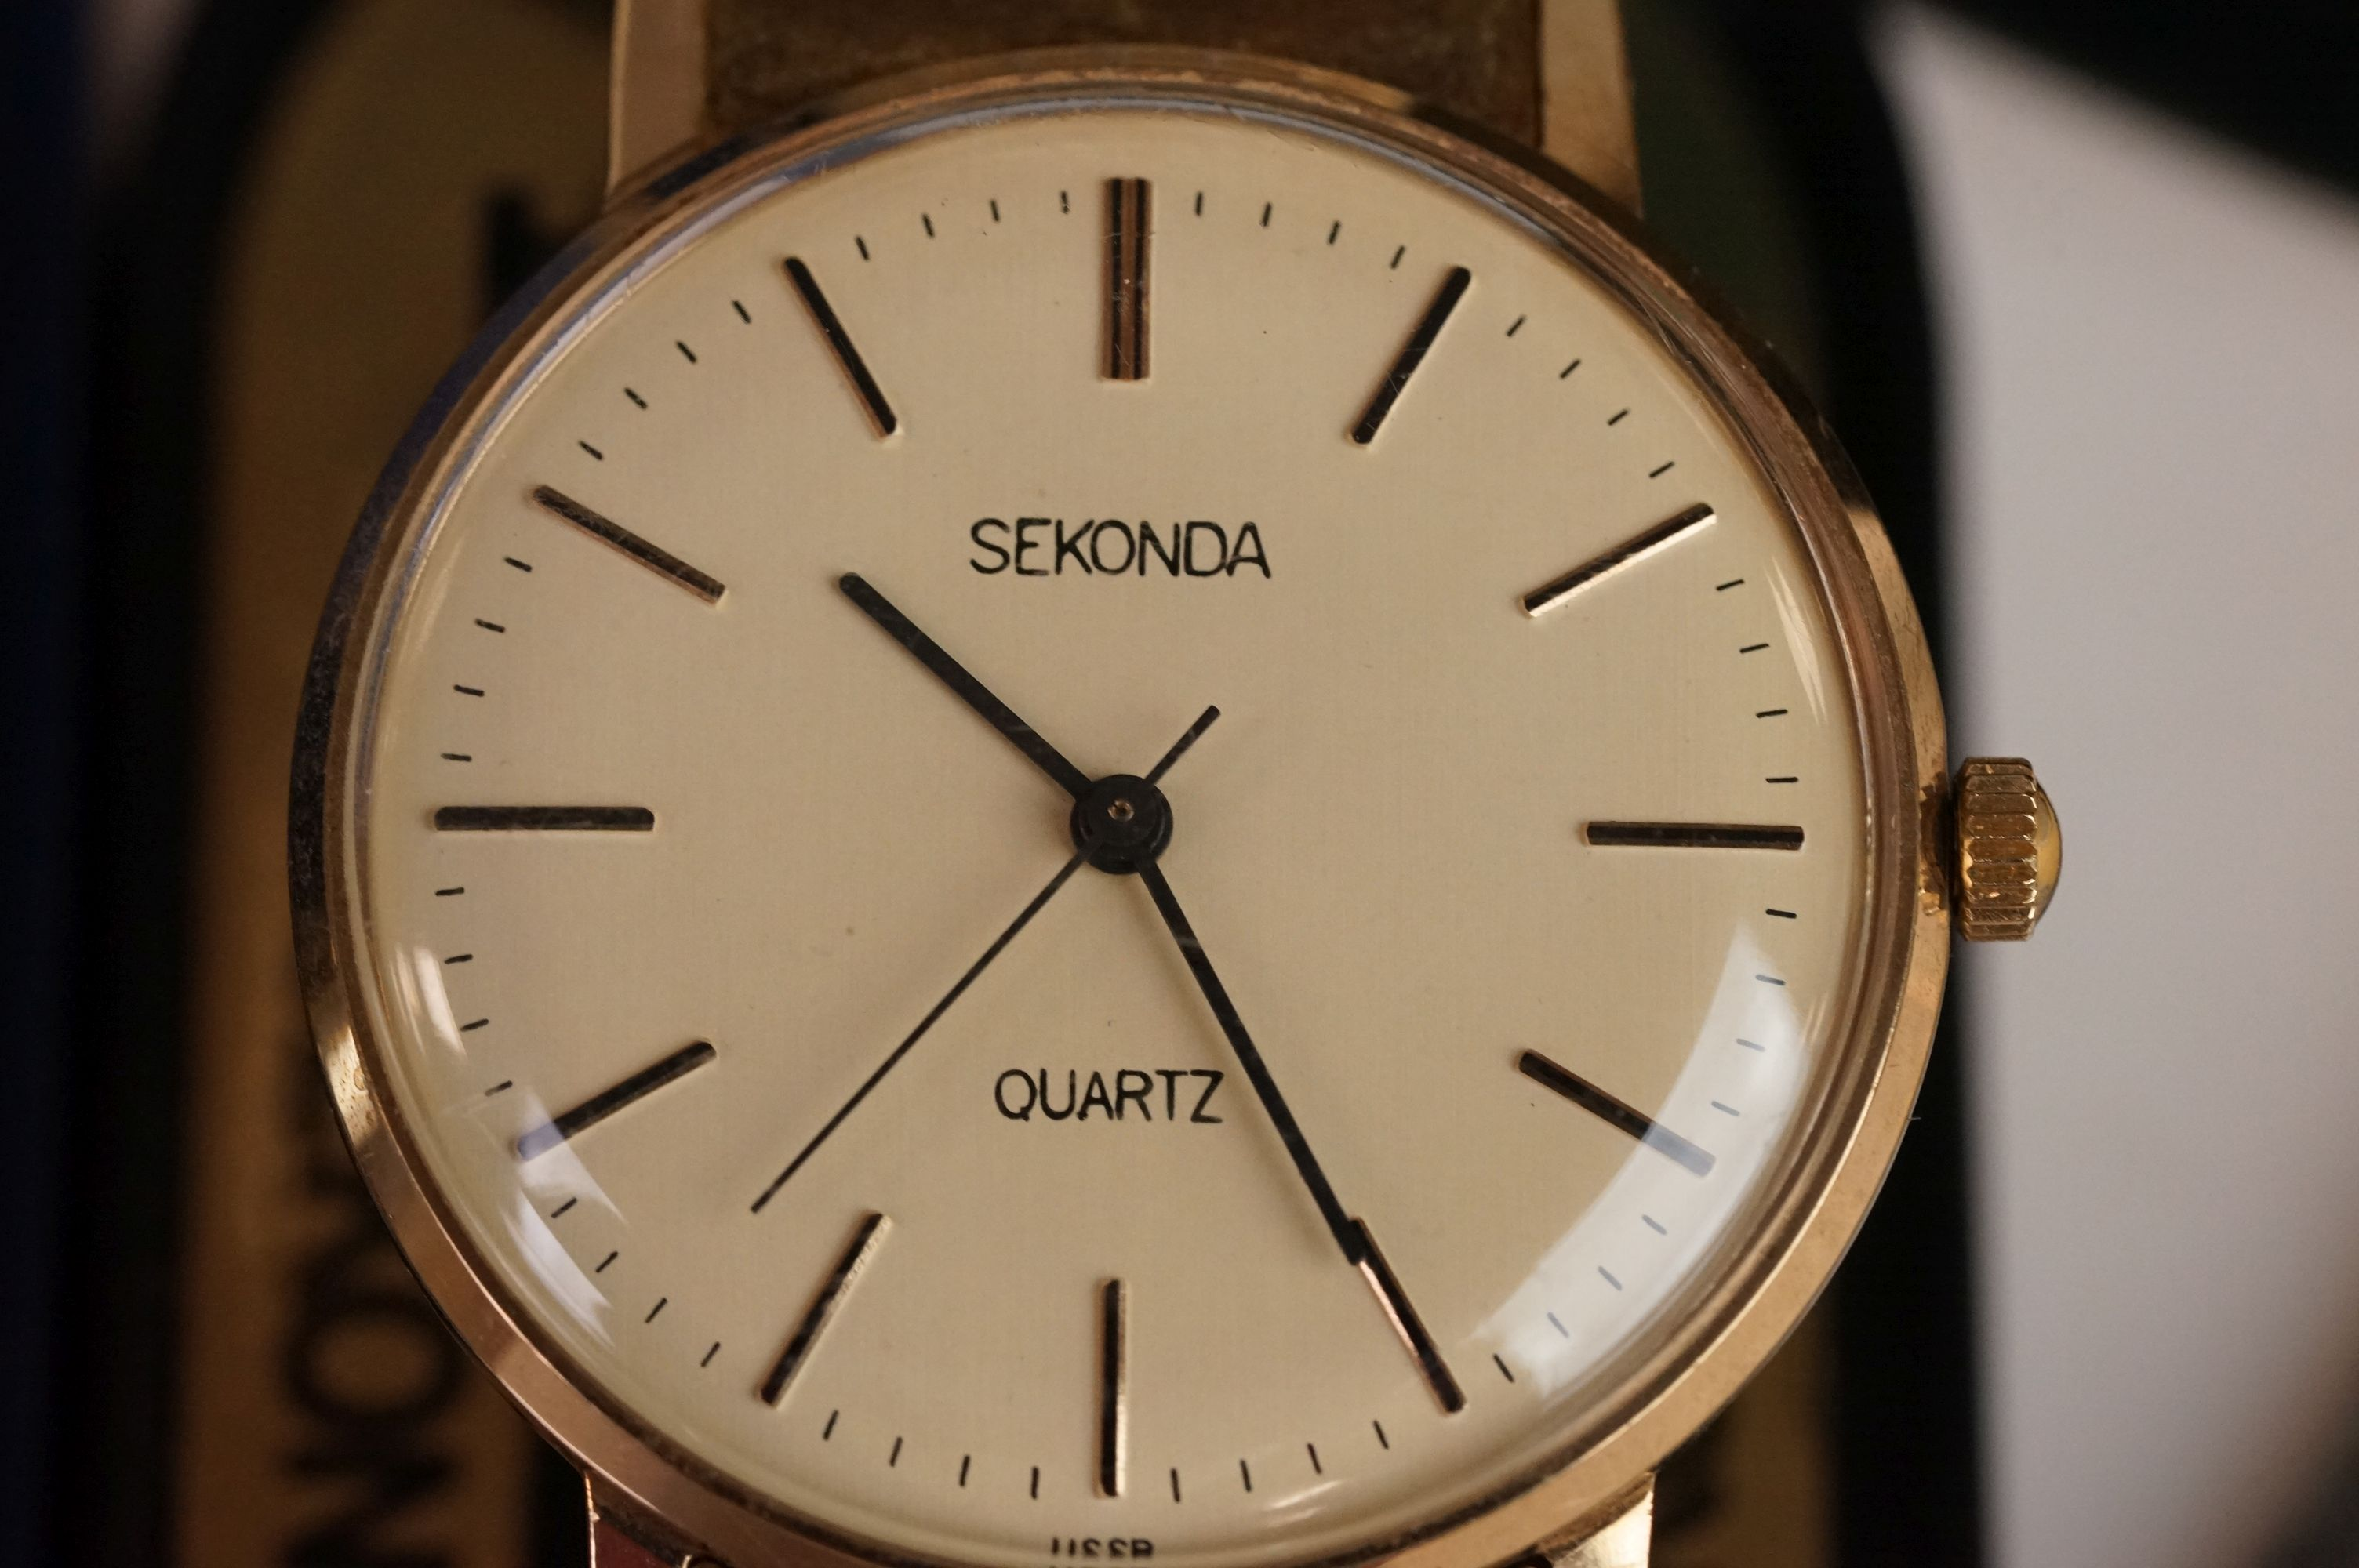 A boxed Seiko SQ gents day / date quartz wristwatch together with another Seiko and a Sekonda. - Image 4 of 8